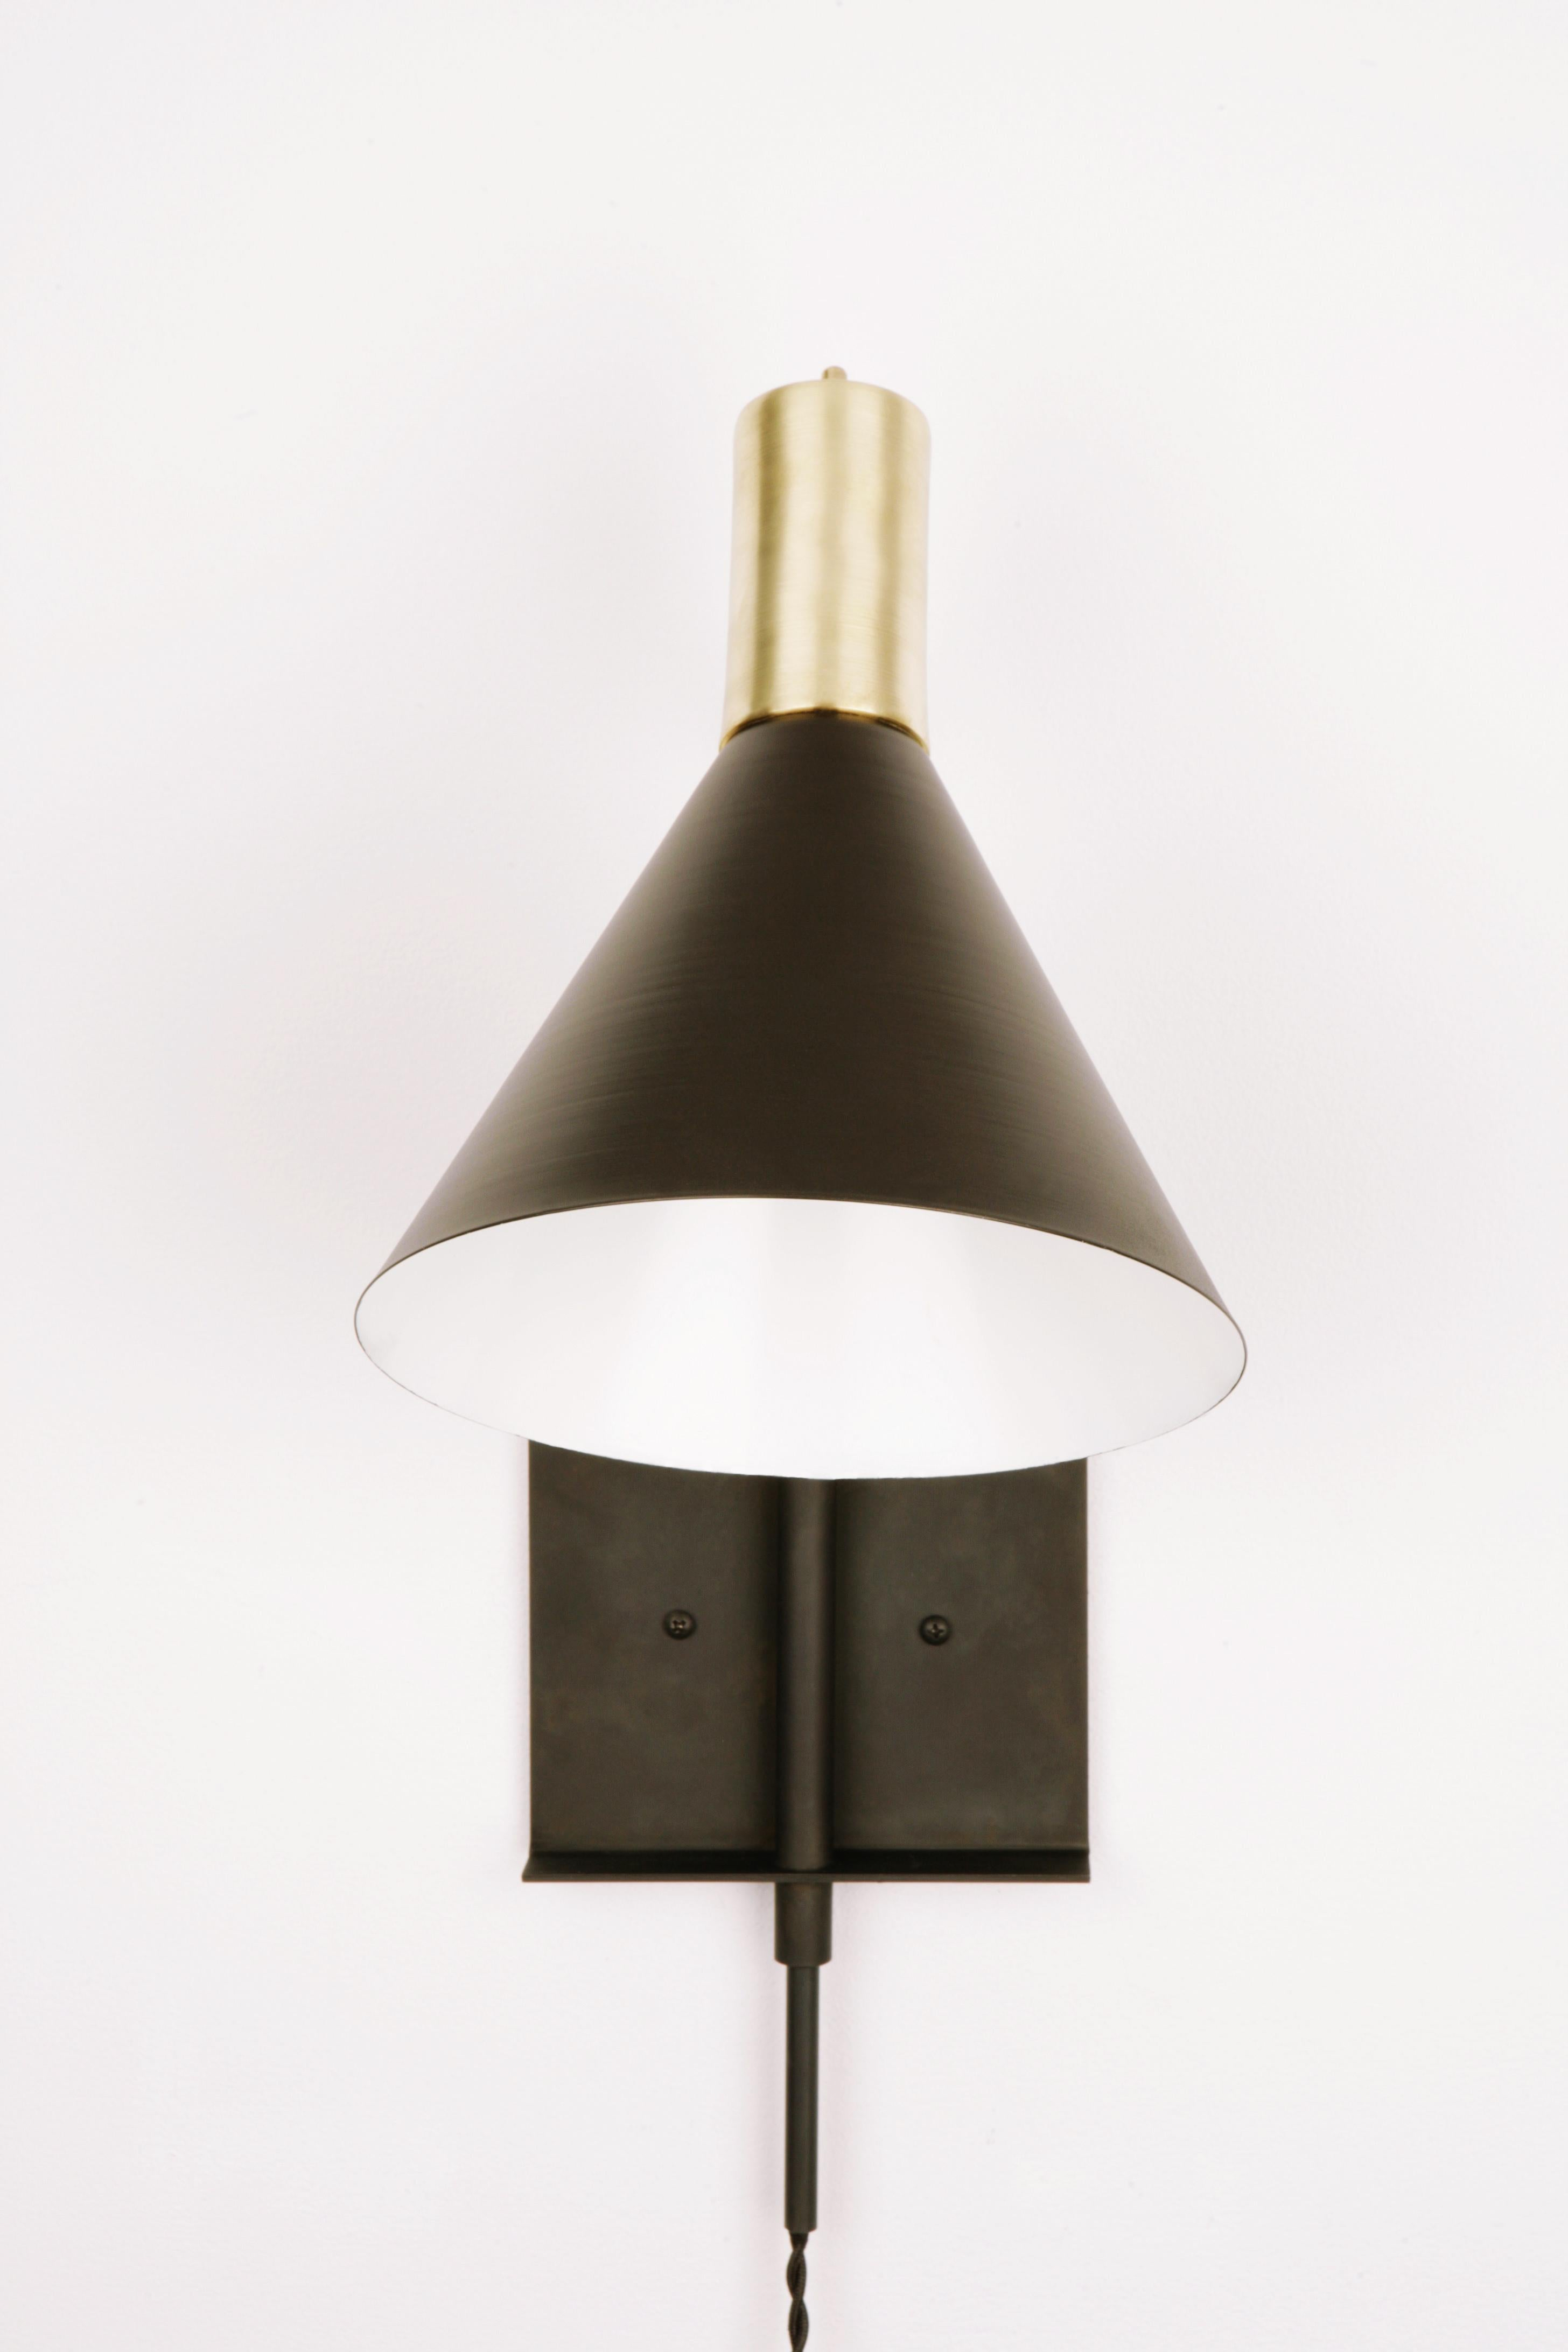 Torche Sconce In Brass And Steel Tilt Swivel Soft Wire Plug Wiring A To Light Fixture Switch Lamp For Sale At 1stdibs